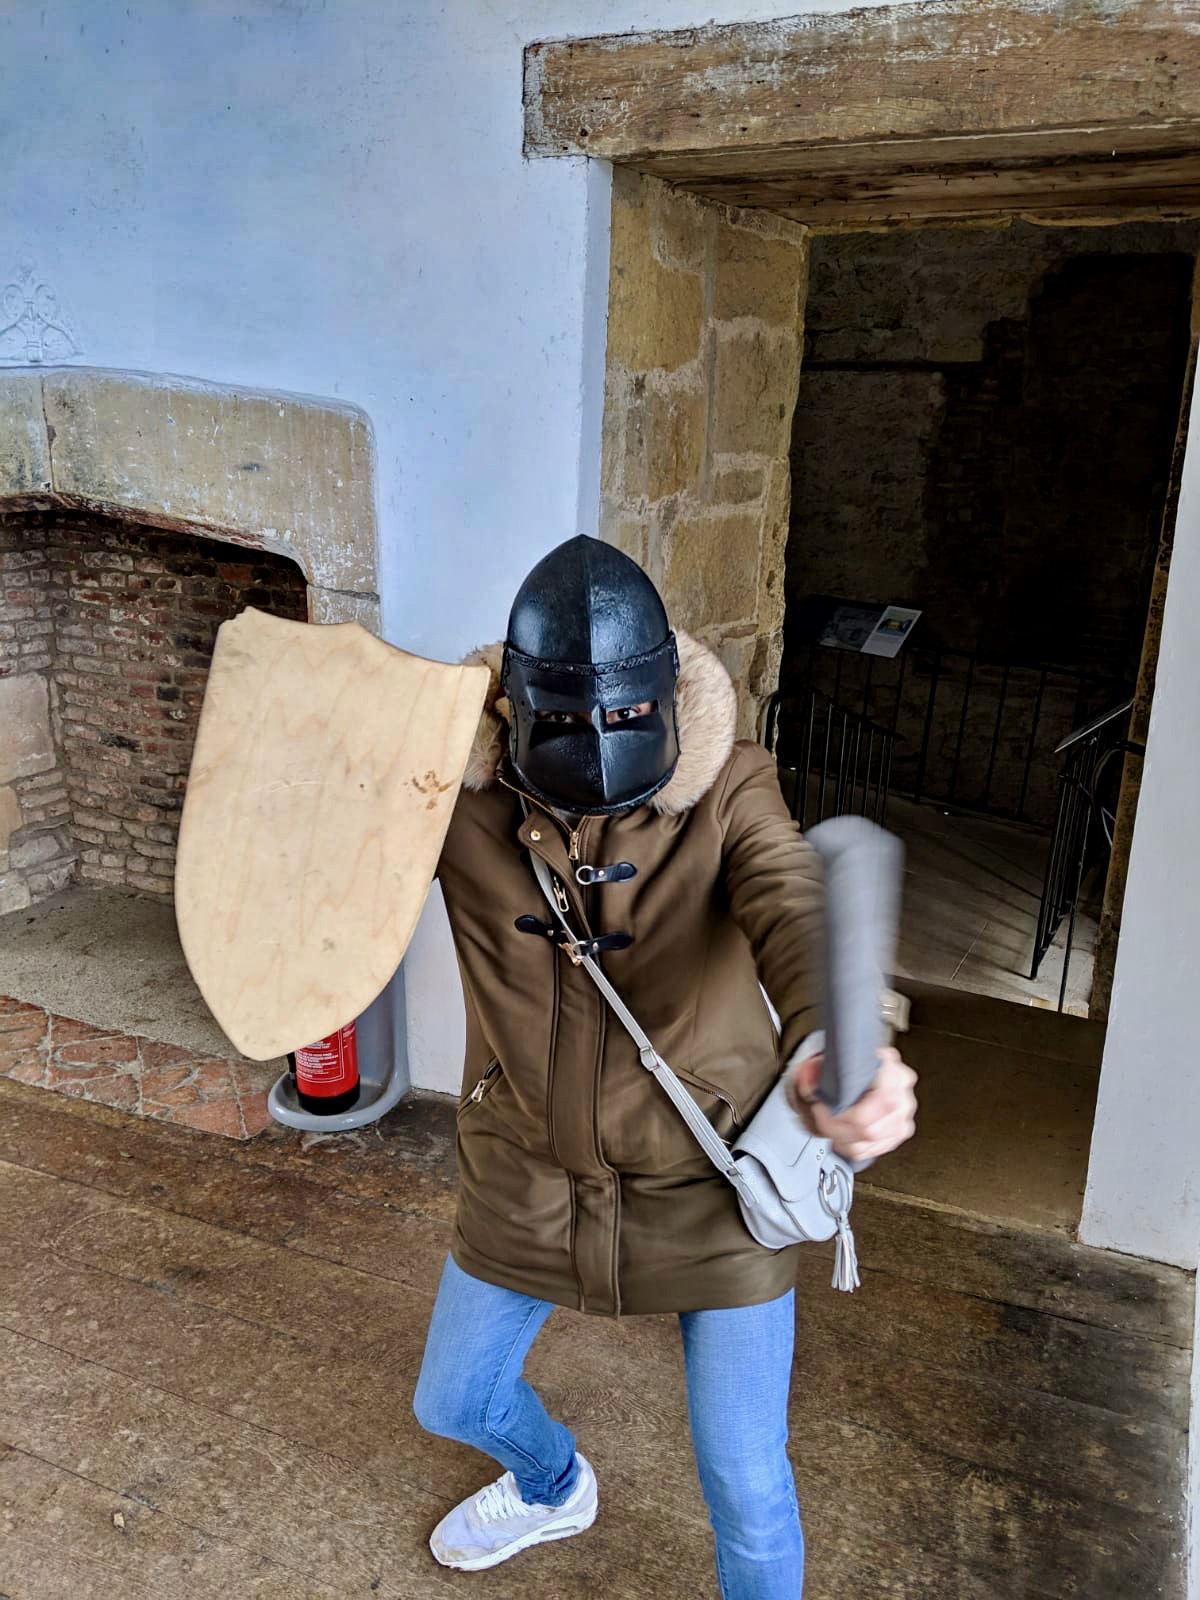 Things to do in Helmsley North Yorkshire: Nell wearing a plastic mask and holding a wooden shield inside Helmsley castle